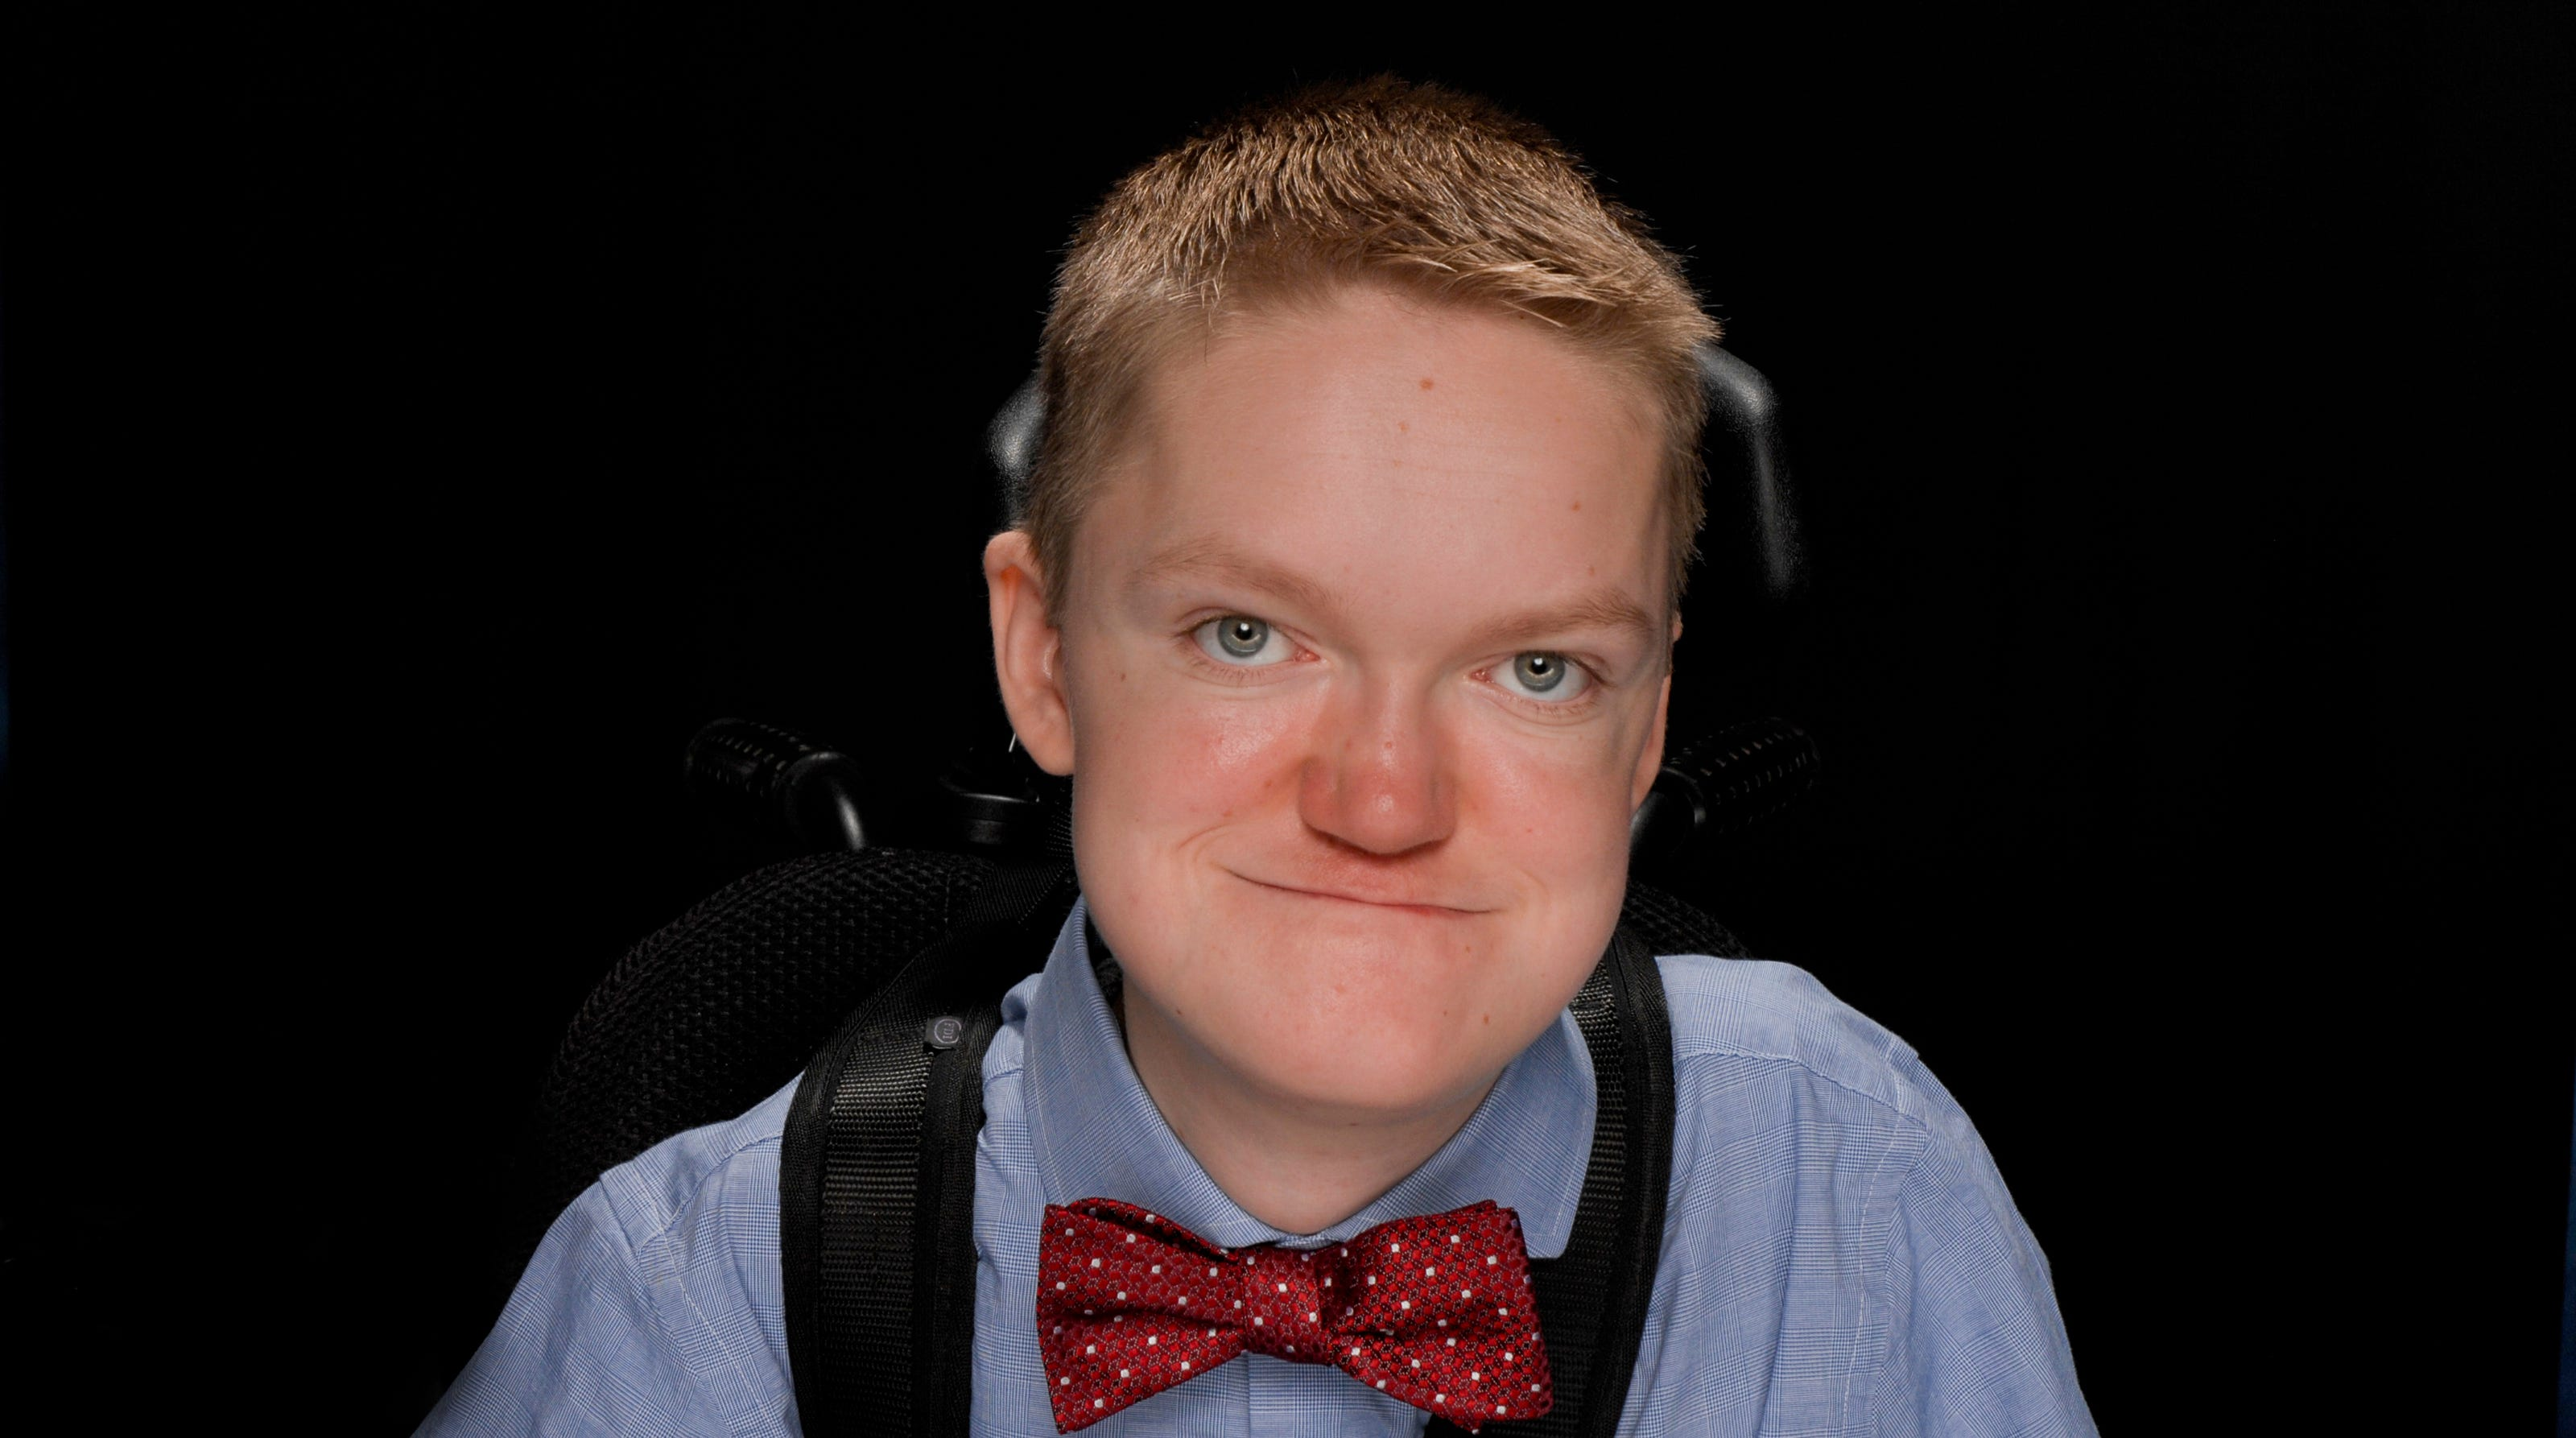 Ryan Cottor Who Defied Medical Condition Inspired Care Facility Dead At 17